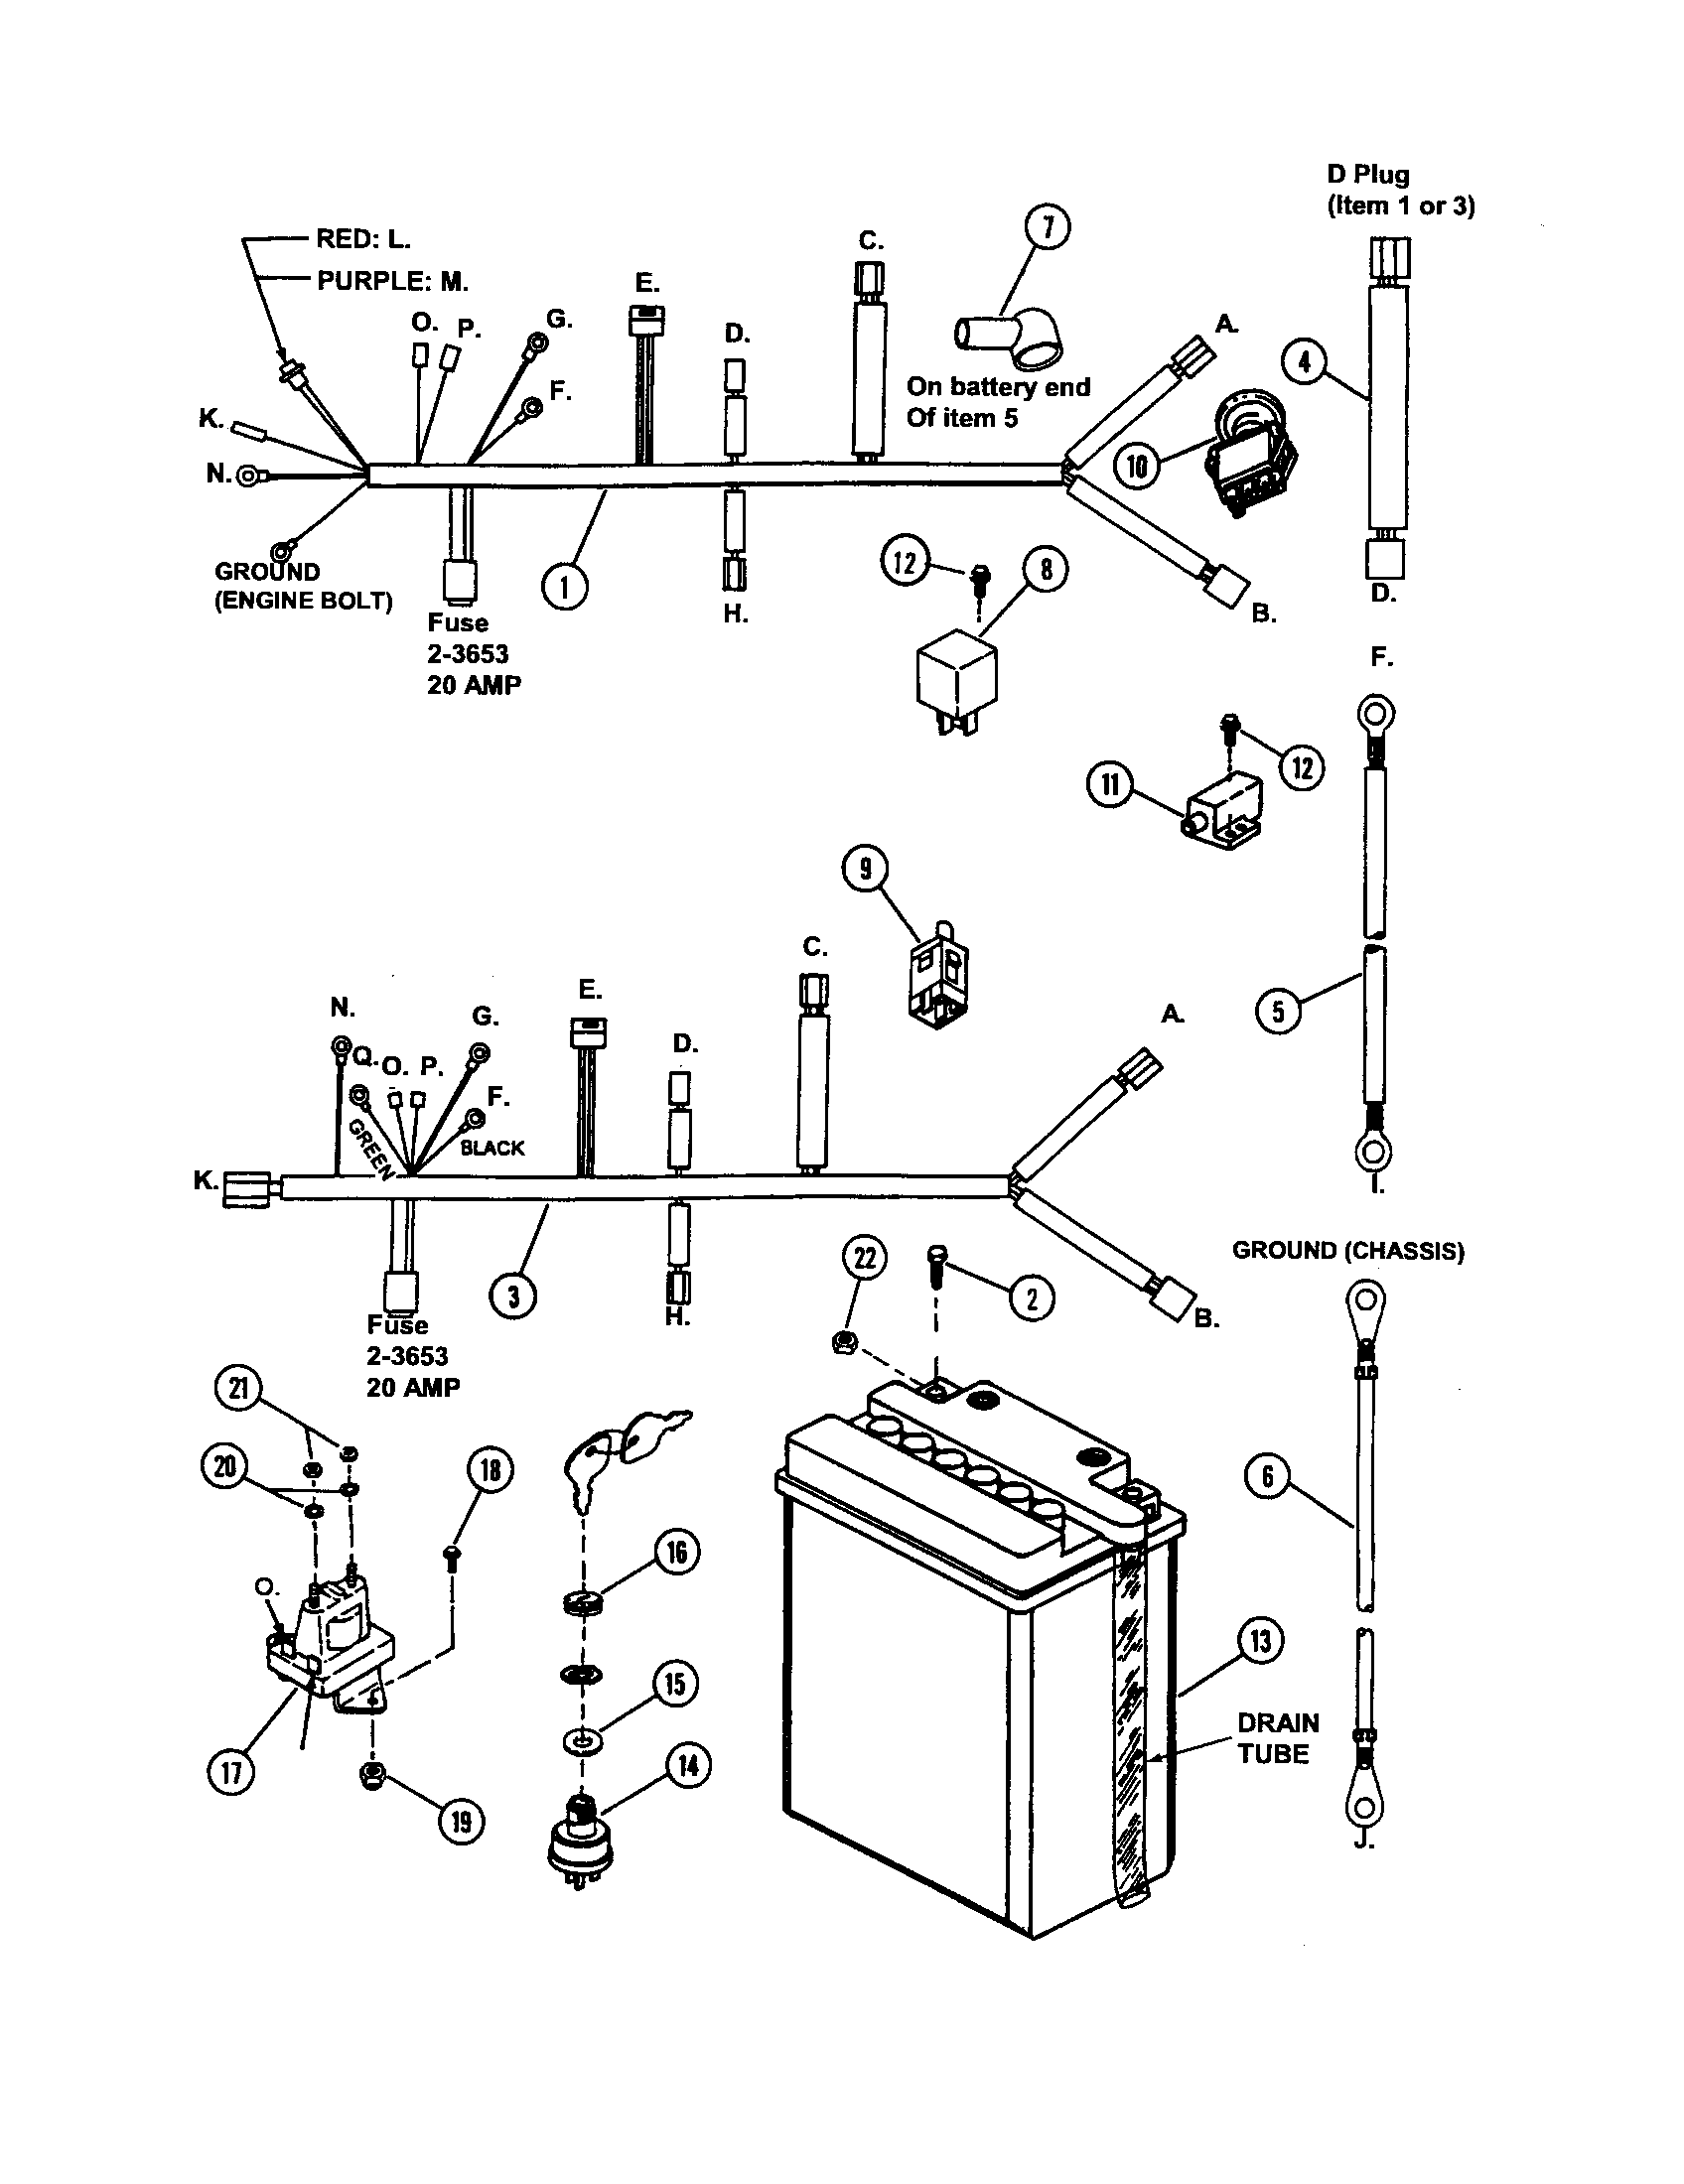 ELECTRICAL COMPONENTS Diagram & Parts List for Model